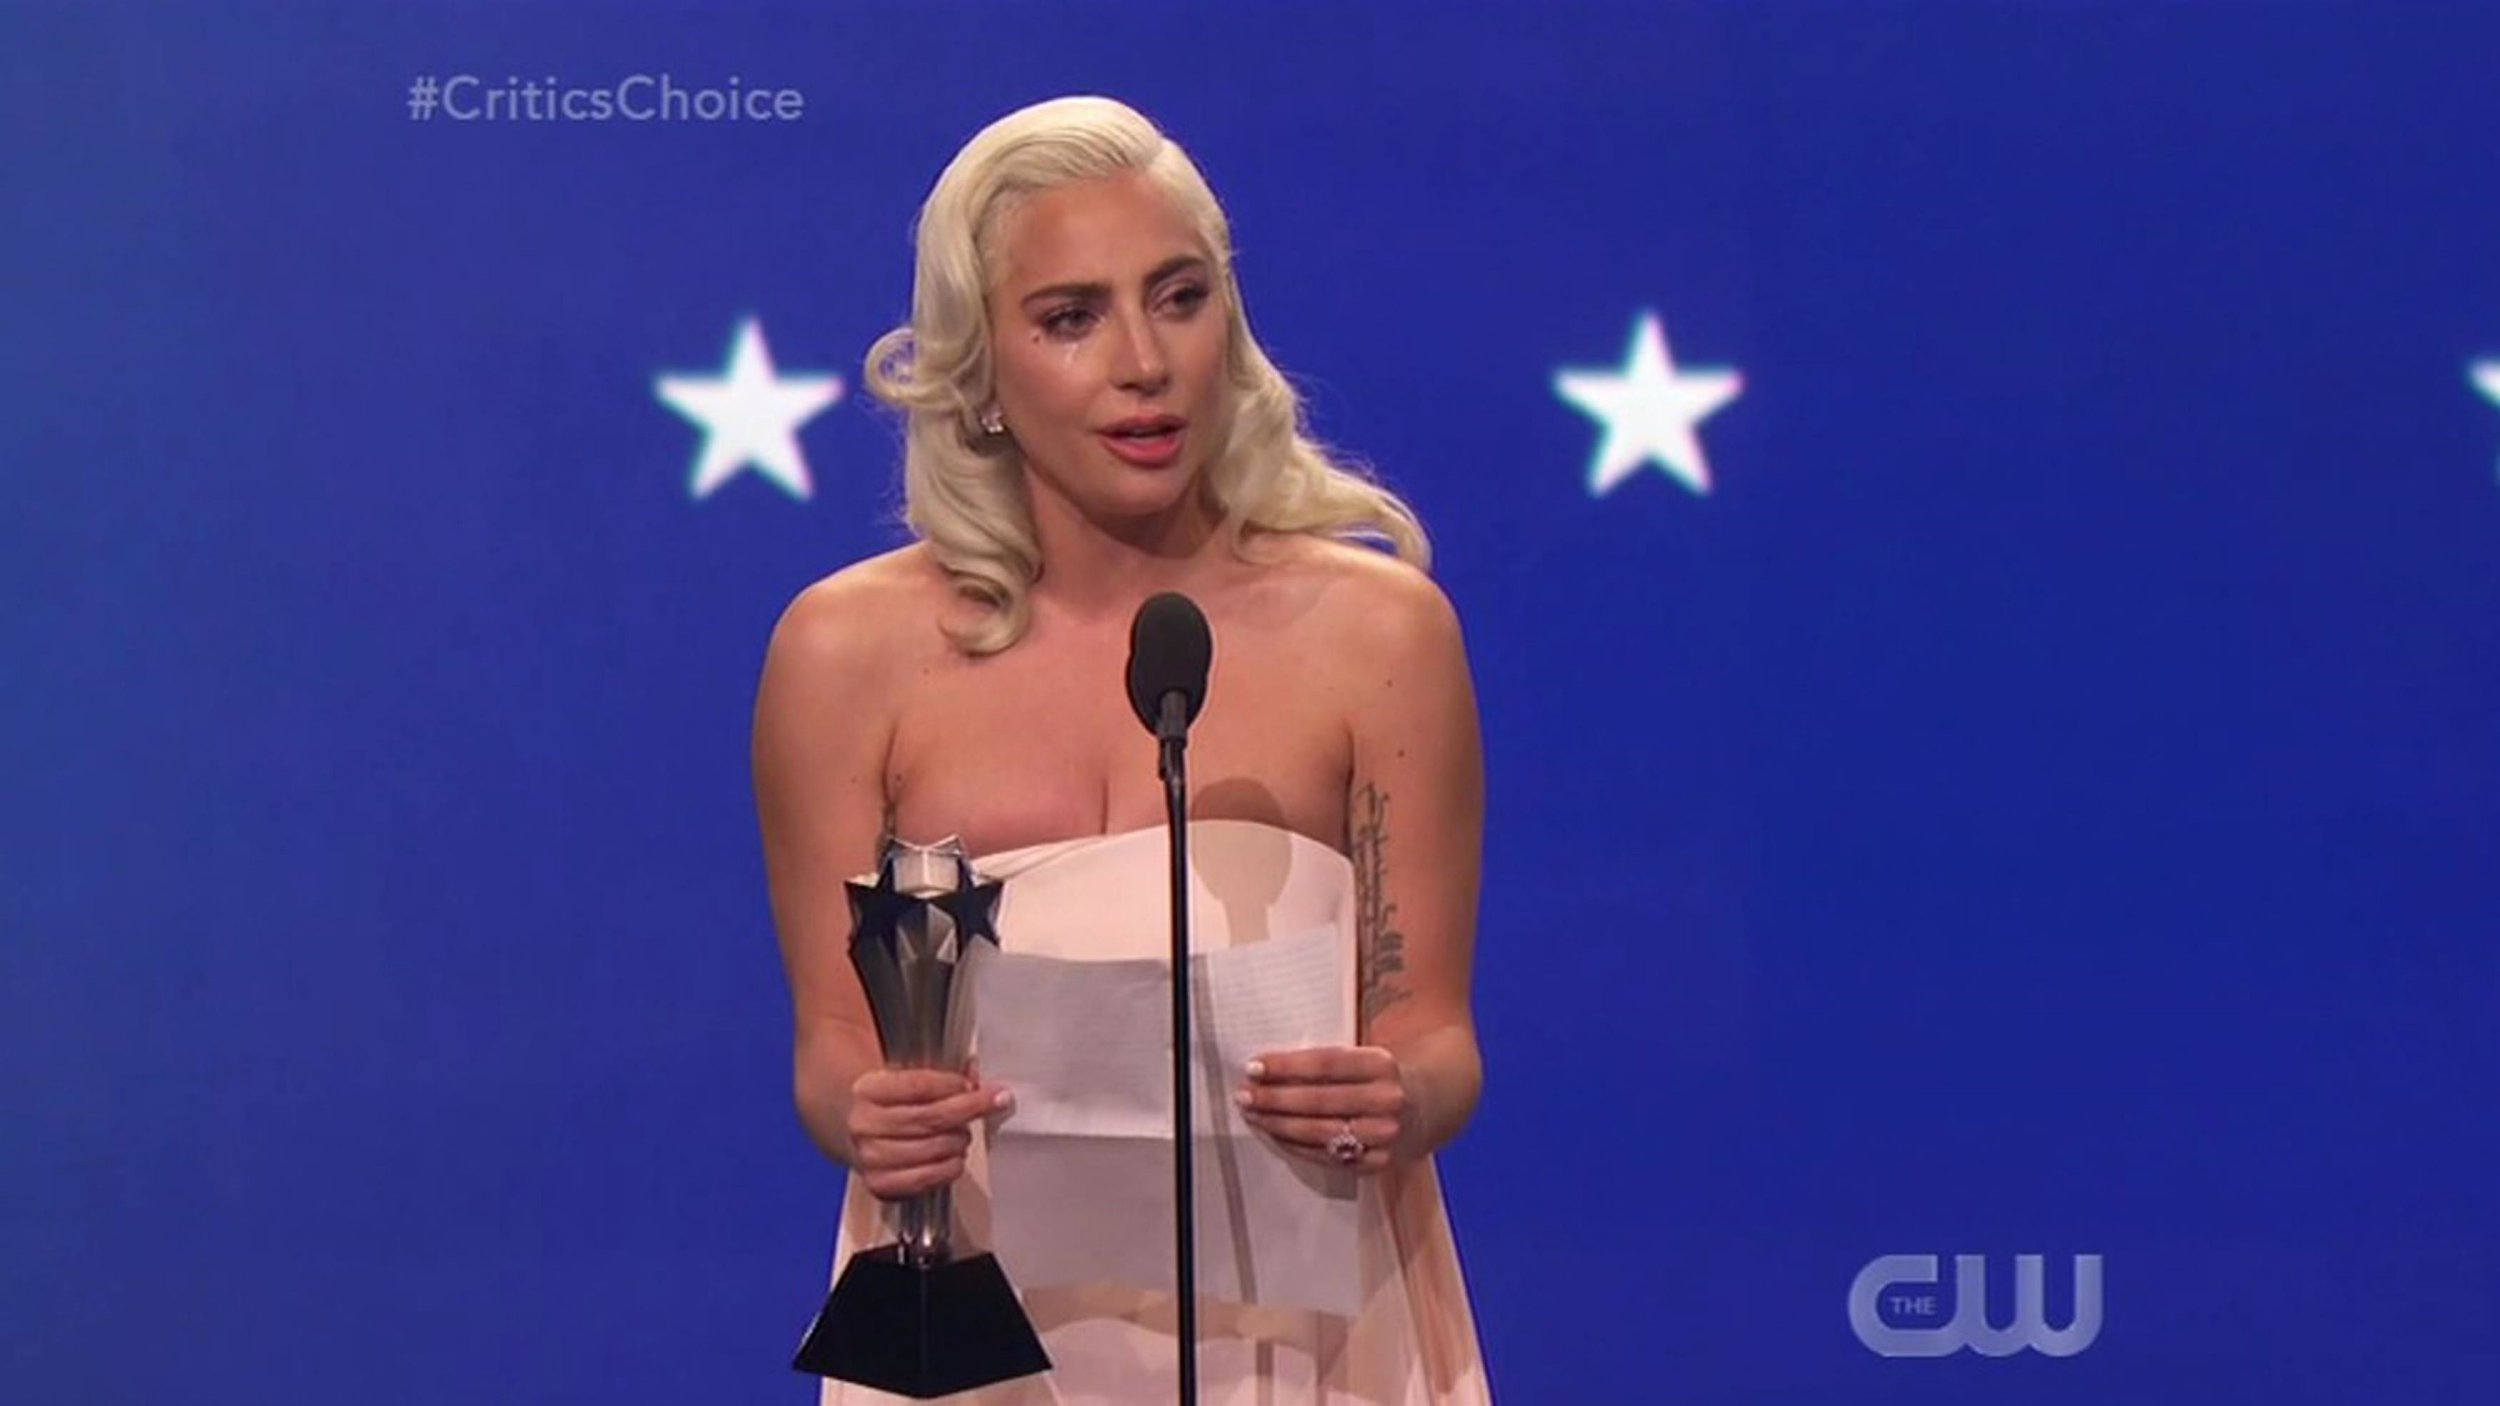 "BGUK_1456220 - ** RIGHTS: WORLDWIDE EXCEPT IN UNITED STATES ** Los Angeles, CA - Lady Gaga sobs through acceptance speech after tying with Glenn Close for Best Actress at the Critics' Choice Awards. The pop icon was overcome with emotion as she took to the stage to accept her second Critics' Choice Award of the night. The singer and actress tied with Glenn Close to take home the Best Actress award for A Star Is Born. Close, who won the award for her role in The Wife, made her speech and stayed on stage while Gaga's name was read as the joint winner. Gaga, who lost out in the category at the Golden Globes earlier this month, burst into tears as soon as her name was announced and gave a tearful speech dedicating her award 'to all people who have suffered from alcoholism or addiction'. ""My mother and Glenn are good friends ??? I???m so very happy you won this evening,"" Gaga began. ""I am so honored by this. I went to places in my mind and my heart that I did not know existed."" Gaga thanked her fiance Christian Carino who was in the audience, before paying tribute to her co-star and director Bradley Cooper, saying: ""Thank you Christian, my love. Bradley, you are a magical film maker. And you are just as magical of a human being. I have never had an experience with a director or an actor like I had with you. You seamlessly were both the love of my life and the man behind the camera."" As the music started playing to tell her she'd gone beyond her allotted time, Gaga quipped: ""It???s okay I can still do this with a piano background,"" as the audience clapped and cheered. In her speech, Close, 71, said: ""I am so thrilled a tie! The world pits us against each other in this profession. And I know, from the other women in this category, we celebrate each other and we are proud to be in this room together."" *BACKGRID DOES NOT CLAIM ANY COPYRIGHT OR LICENSE IN THE ATTACHED MATERIAL. ANY DOWNLOADING FEES CHARGED BY BACKGRID ARE FOR BACKGRID'S SERVICES ONLY, AND DO NOT, NOR ARE THEY INTENDED TO, CONVEY TO THE USER ANY COPYRIGHT OR LICENSE IN THE MAT Pictured: Lady Gaga BACKGRID UK 13 JANUARY 2019 BYLINE MUST READ: The CW / BACKGRID *BACKGRID DOES NOT CLAIM ANY COPYRIGHT OR LICENSE IN THE ATTACHED MATERIAL. ANY DOWNLOADING FEES CHARGED BY BACKGRID ARE FOR BACKGRID'S SERVICES ONLY, AND DO NOT, NOR ARE THEY INTENDED TO, CONVEY TO THE USER ANY COPYRIGHT OR LICENSE IN THE MATERIAL. BY PUBLISHING THIS MATERIAL , THE USER EXPRESSLY AGREES TO INDEMNIFY AND TO HOLD BACKGRID HARMLESS FROM ANY CLAIMS, DEMANDS, OR CAUSES OF ACTION ARISING OUT OF OR CONNECTED IN ANY WAY WITH USER'S PUBLICATION OF THE MATERIAL* UK: +44 208 344 2007 / uksales@backgrid.com USA: +1 310 798 9111 / usasales@backgrid.com *UK Clients - Pictures Containing Children Please Pixelate Face Prior To Publication*"